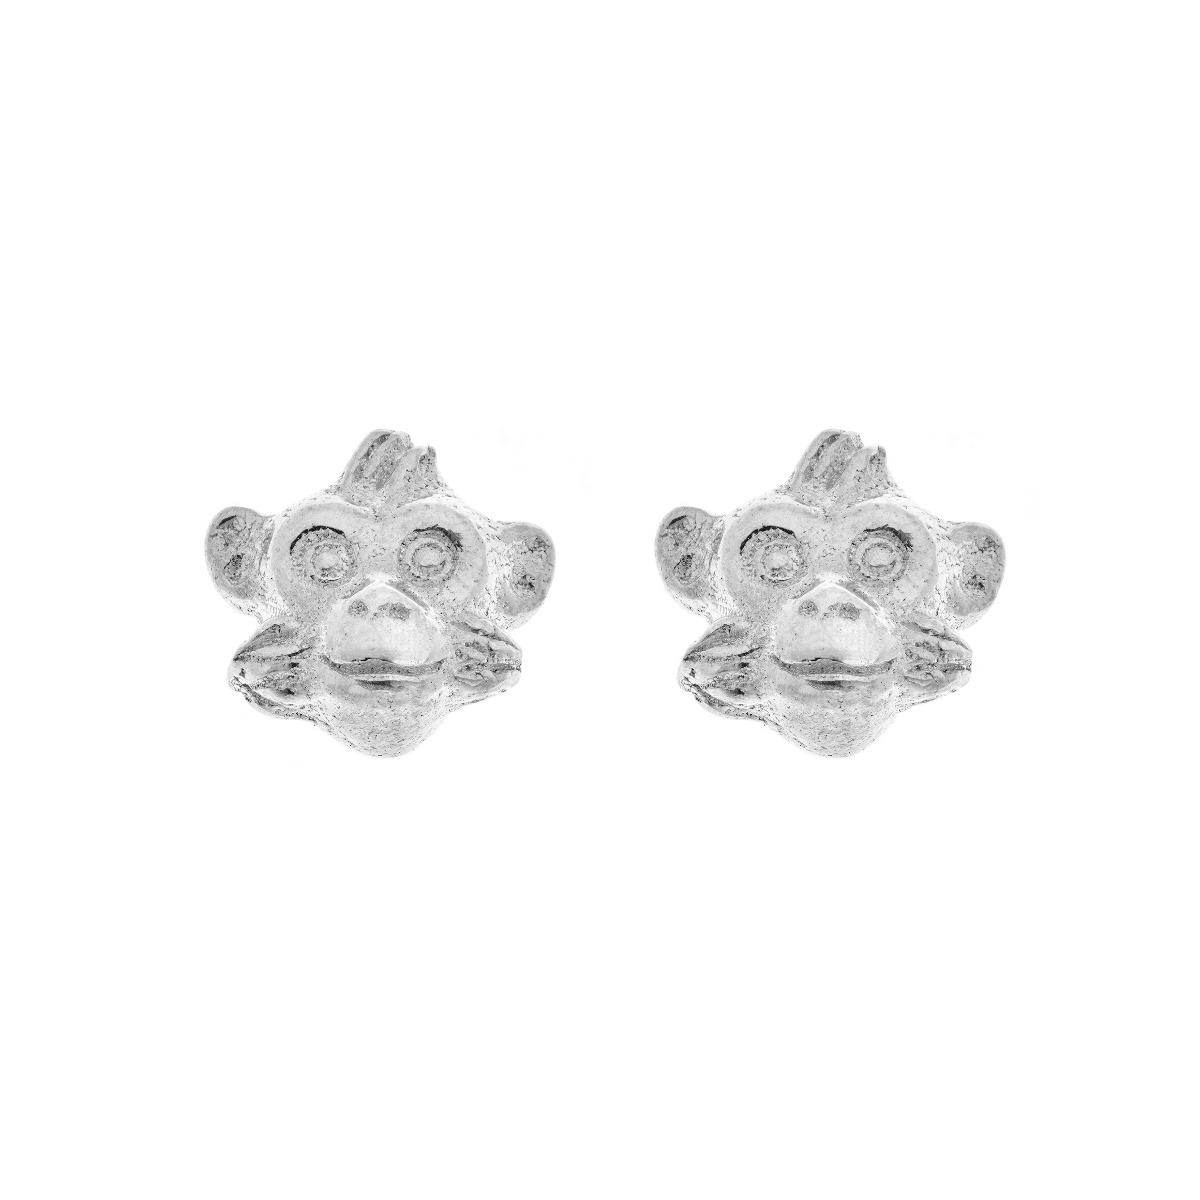 Chinese Zodiac Monkey Earring